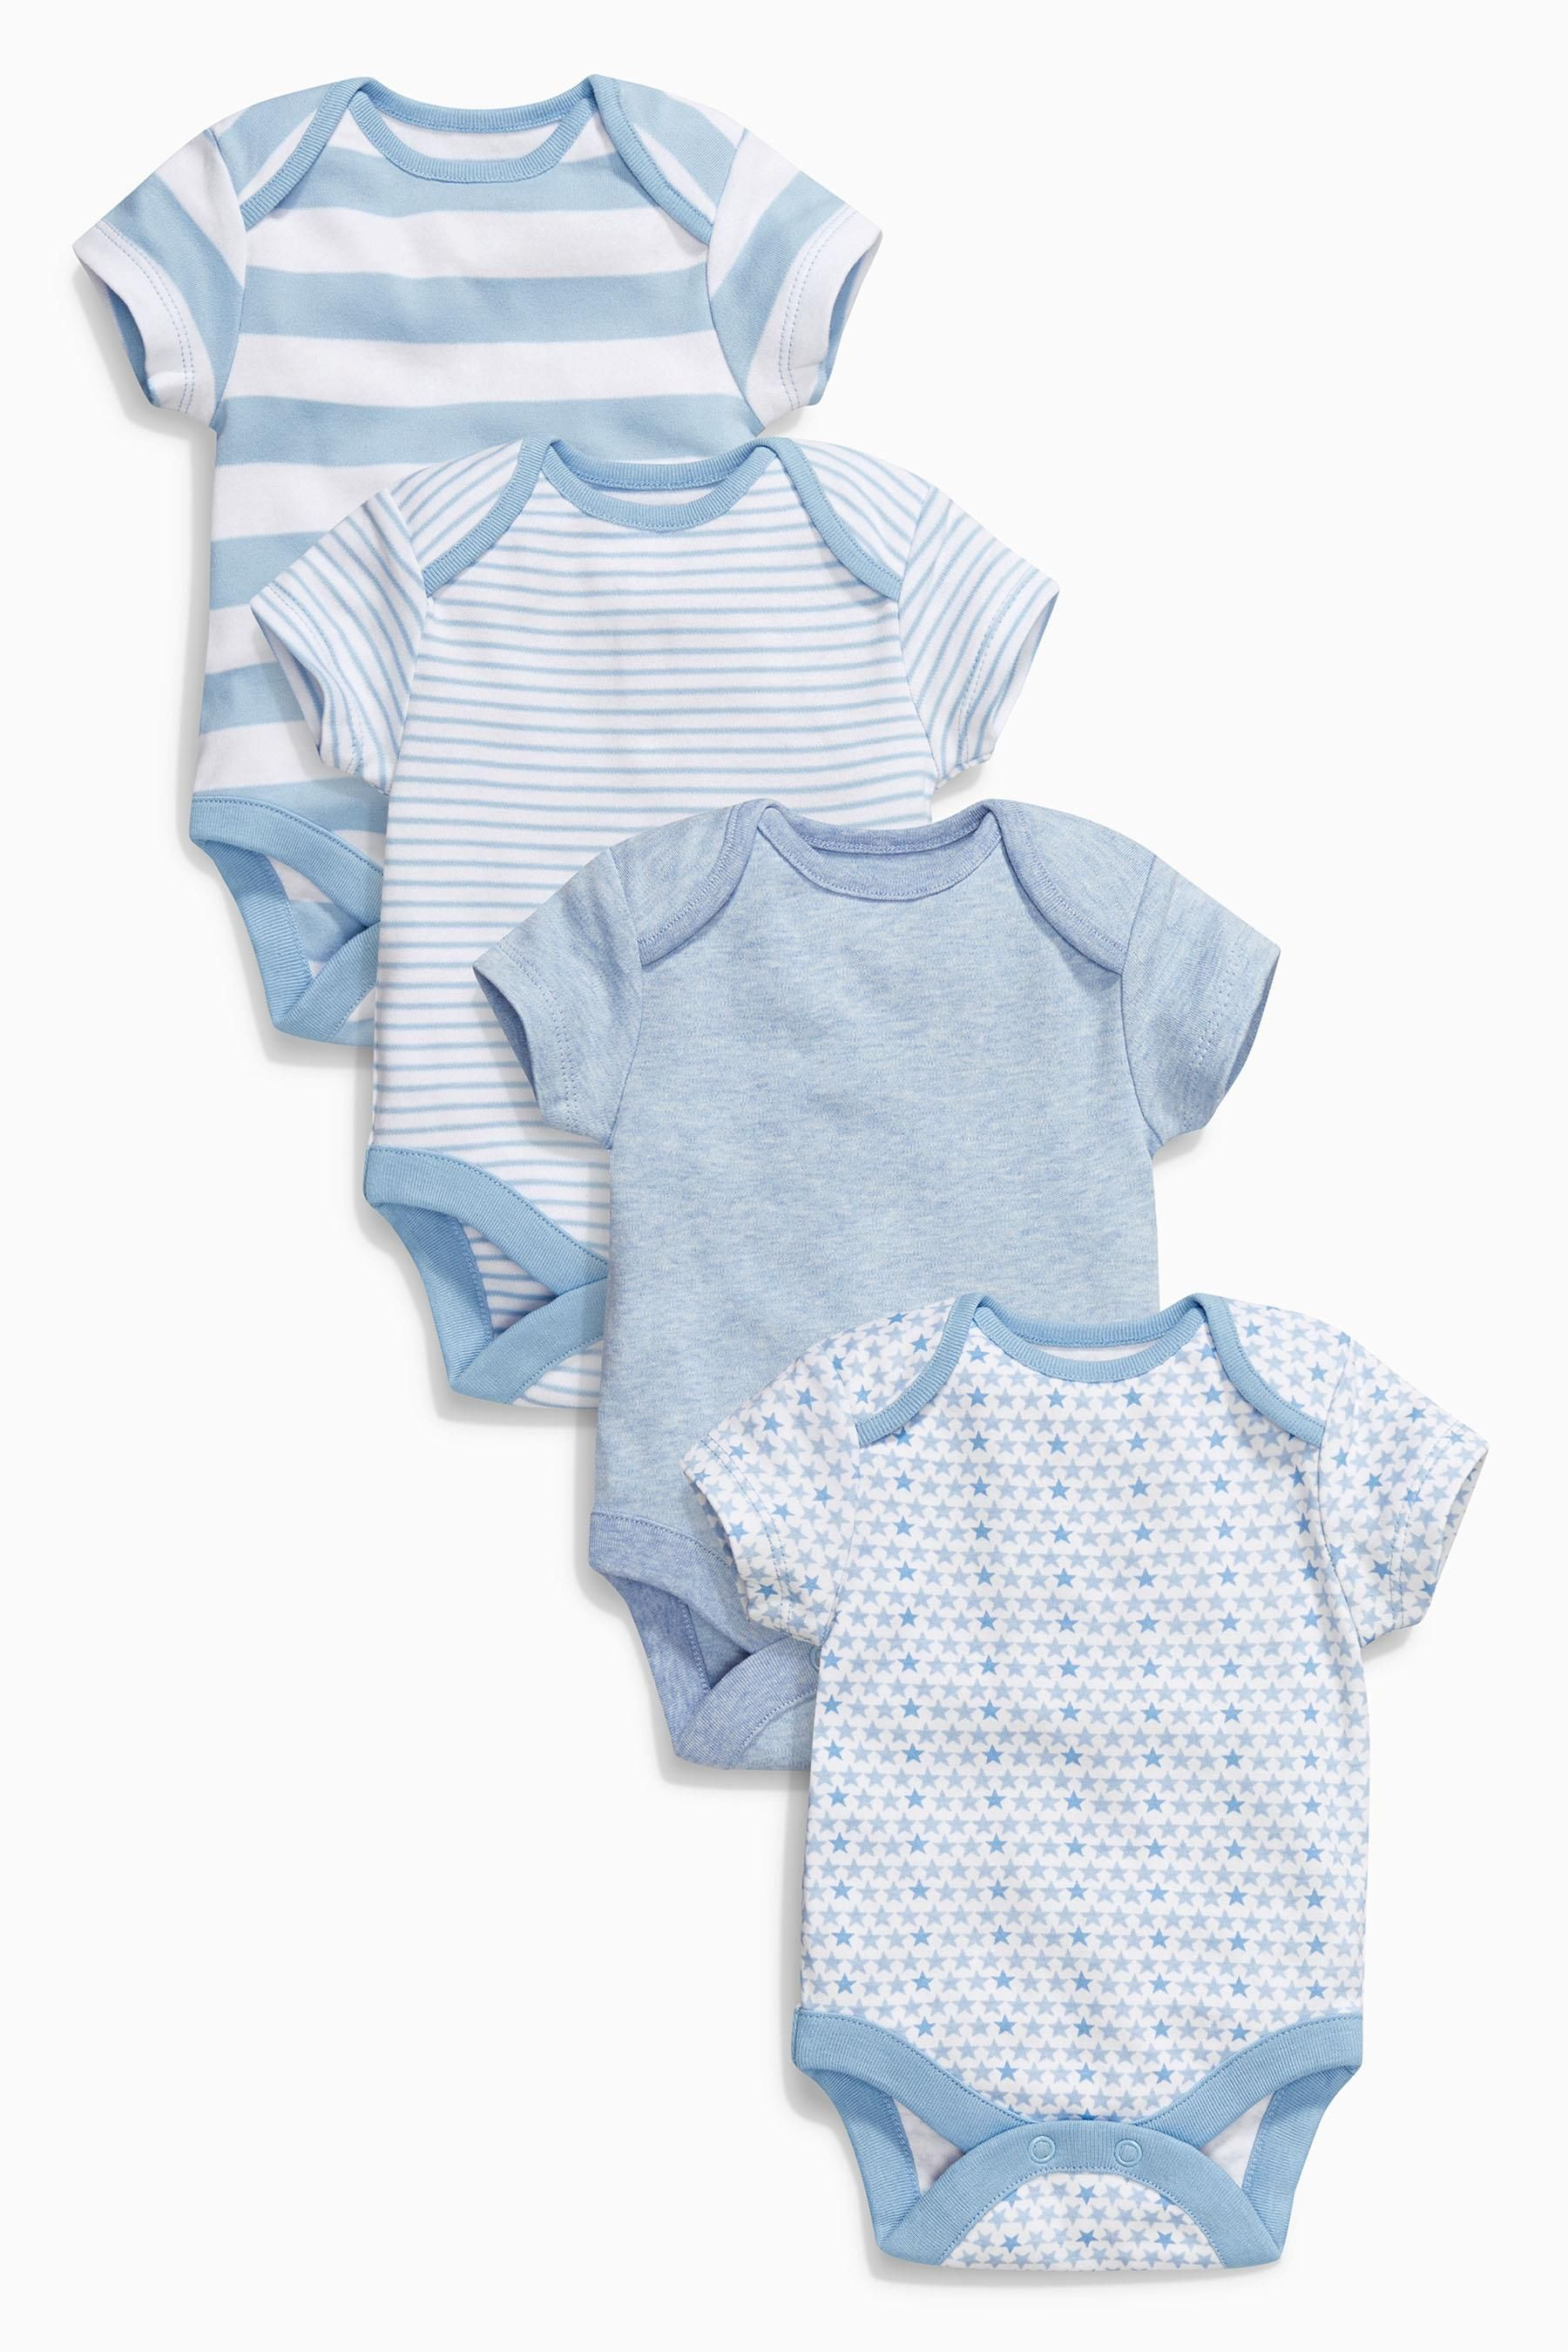 6-6s.jpg (6×6)  Baby boy outfits, Blue vests, Boy outfits